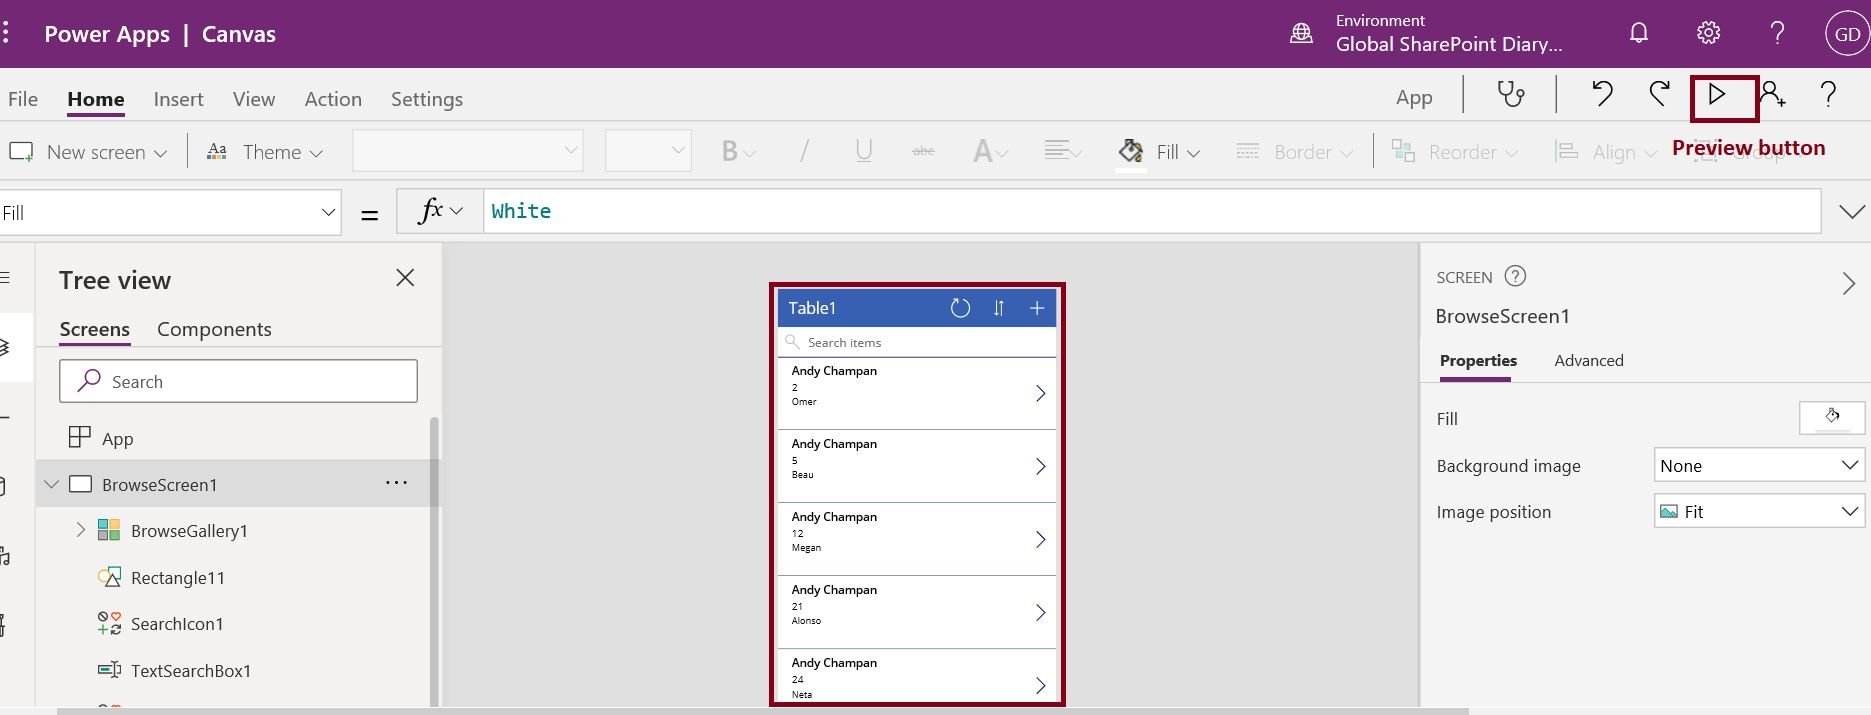 Preview button in PowerApps to run the app locally